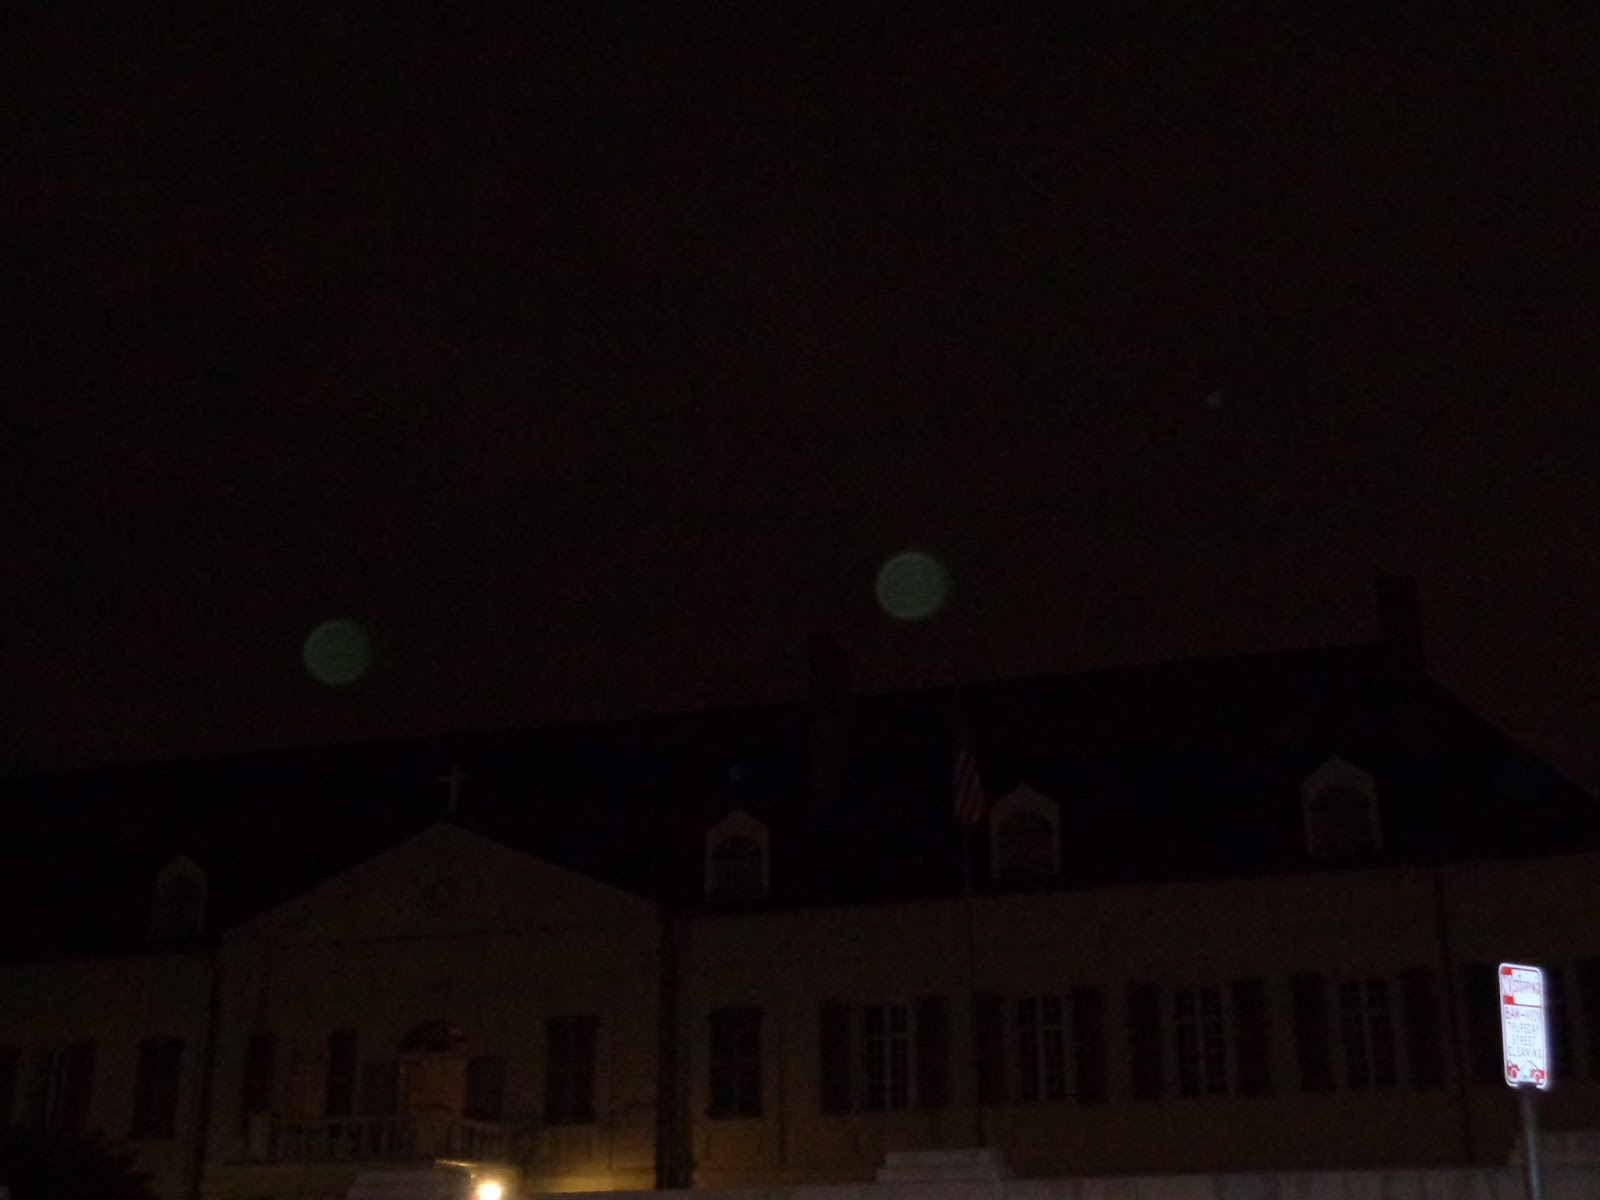 SEEKING PSYCHICS AND MOST ANYTHING PARANORMAL: NEW ORLEANS ORBS